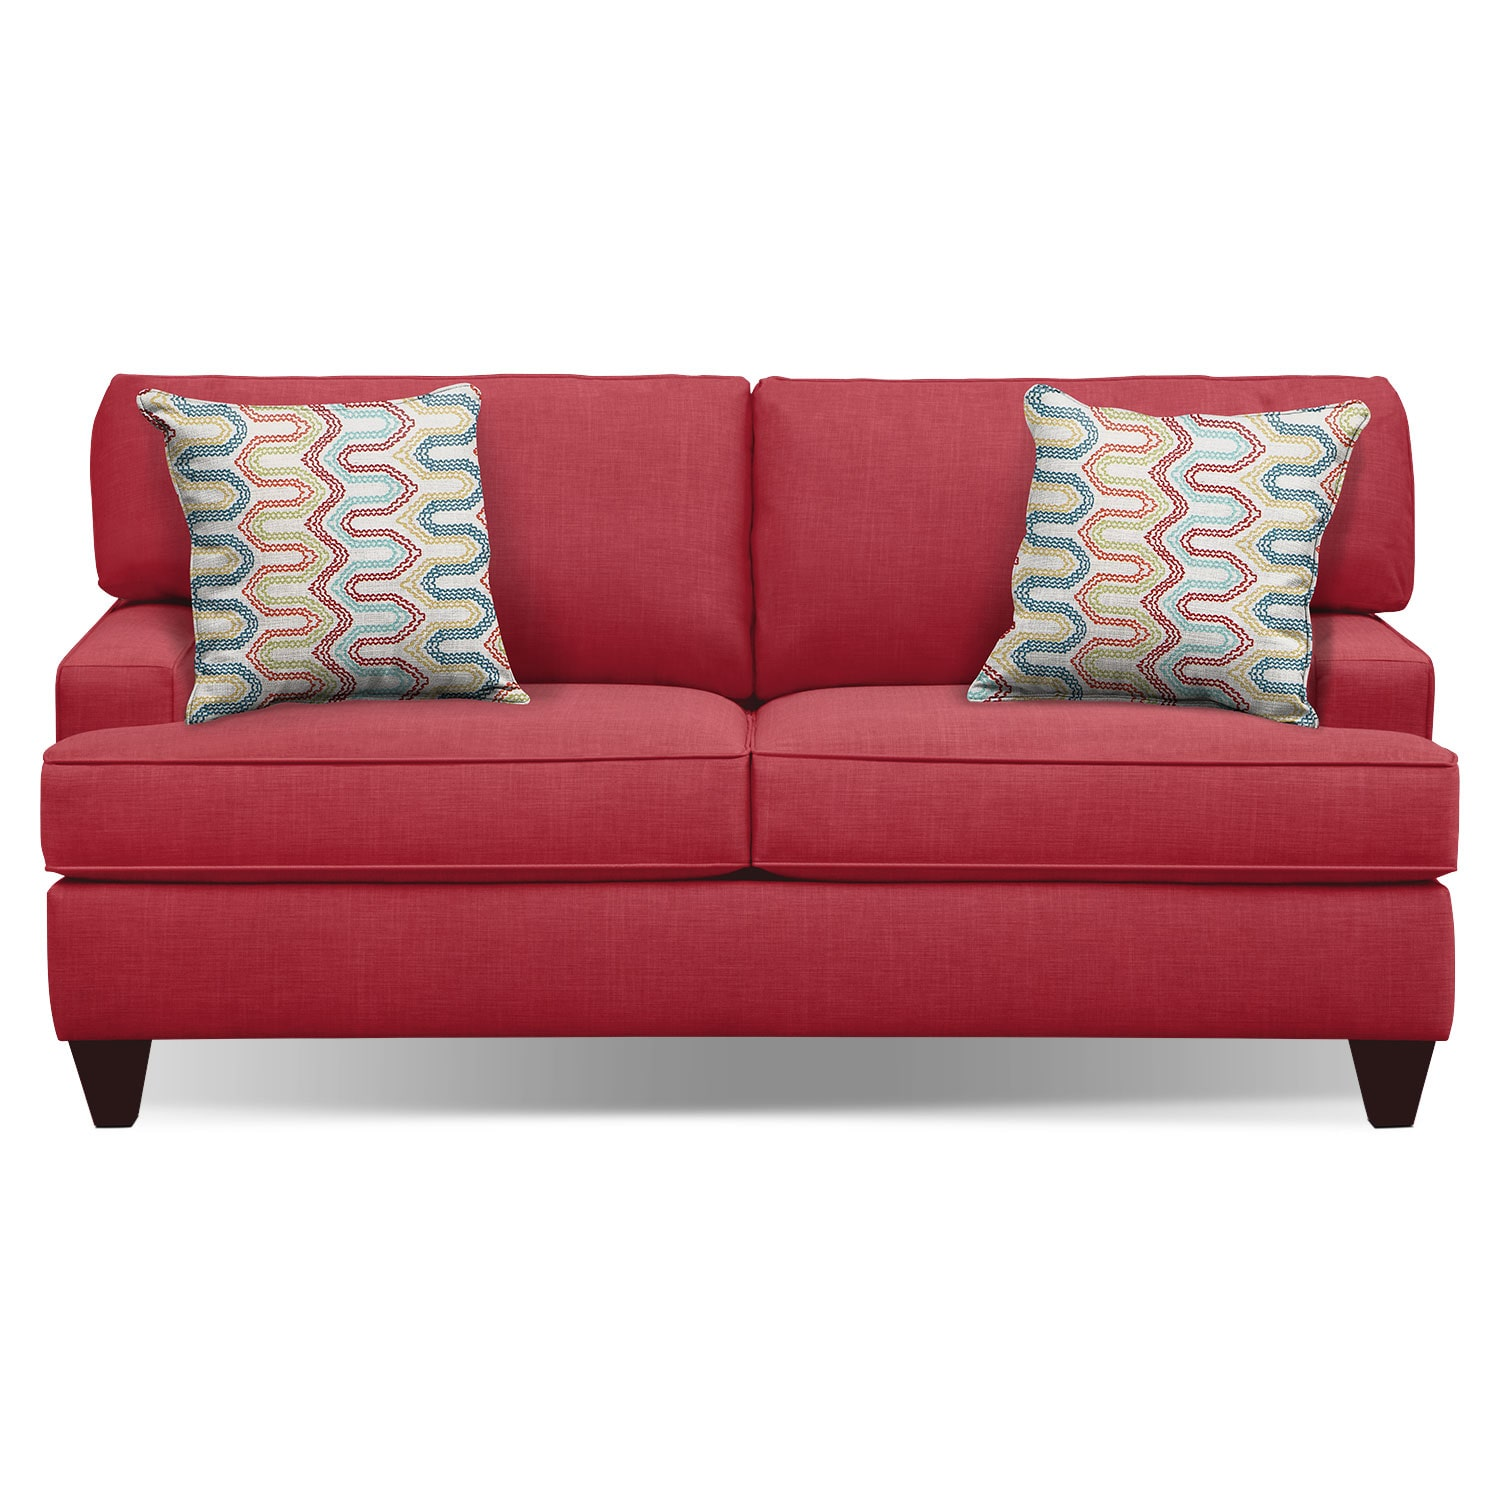 "Conner Red 75"" Innerspring Sleeper Sofa"